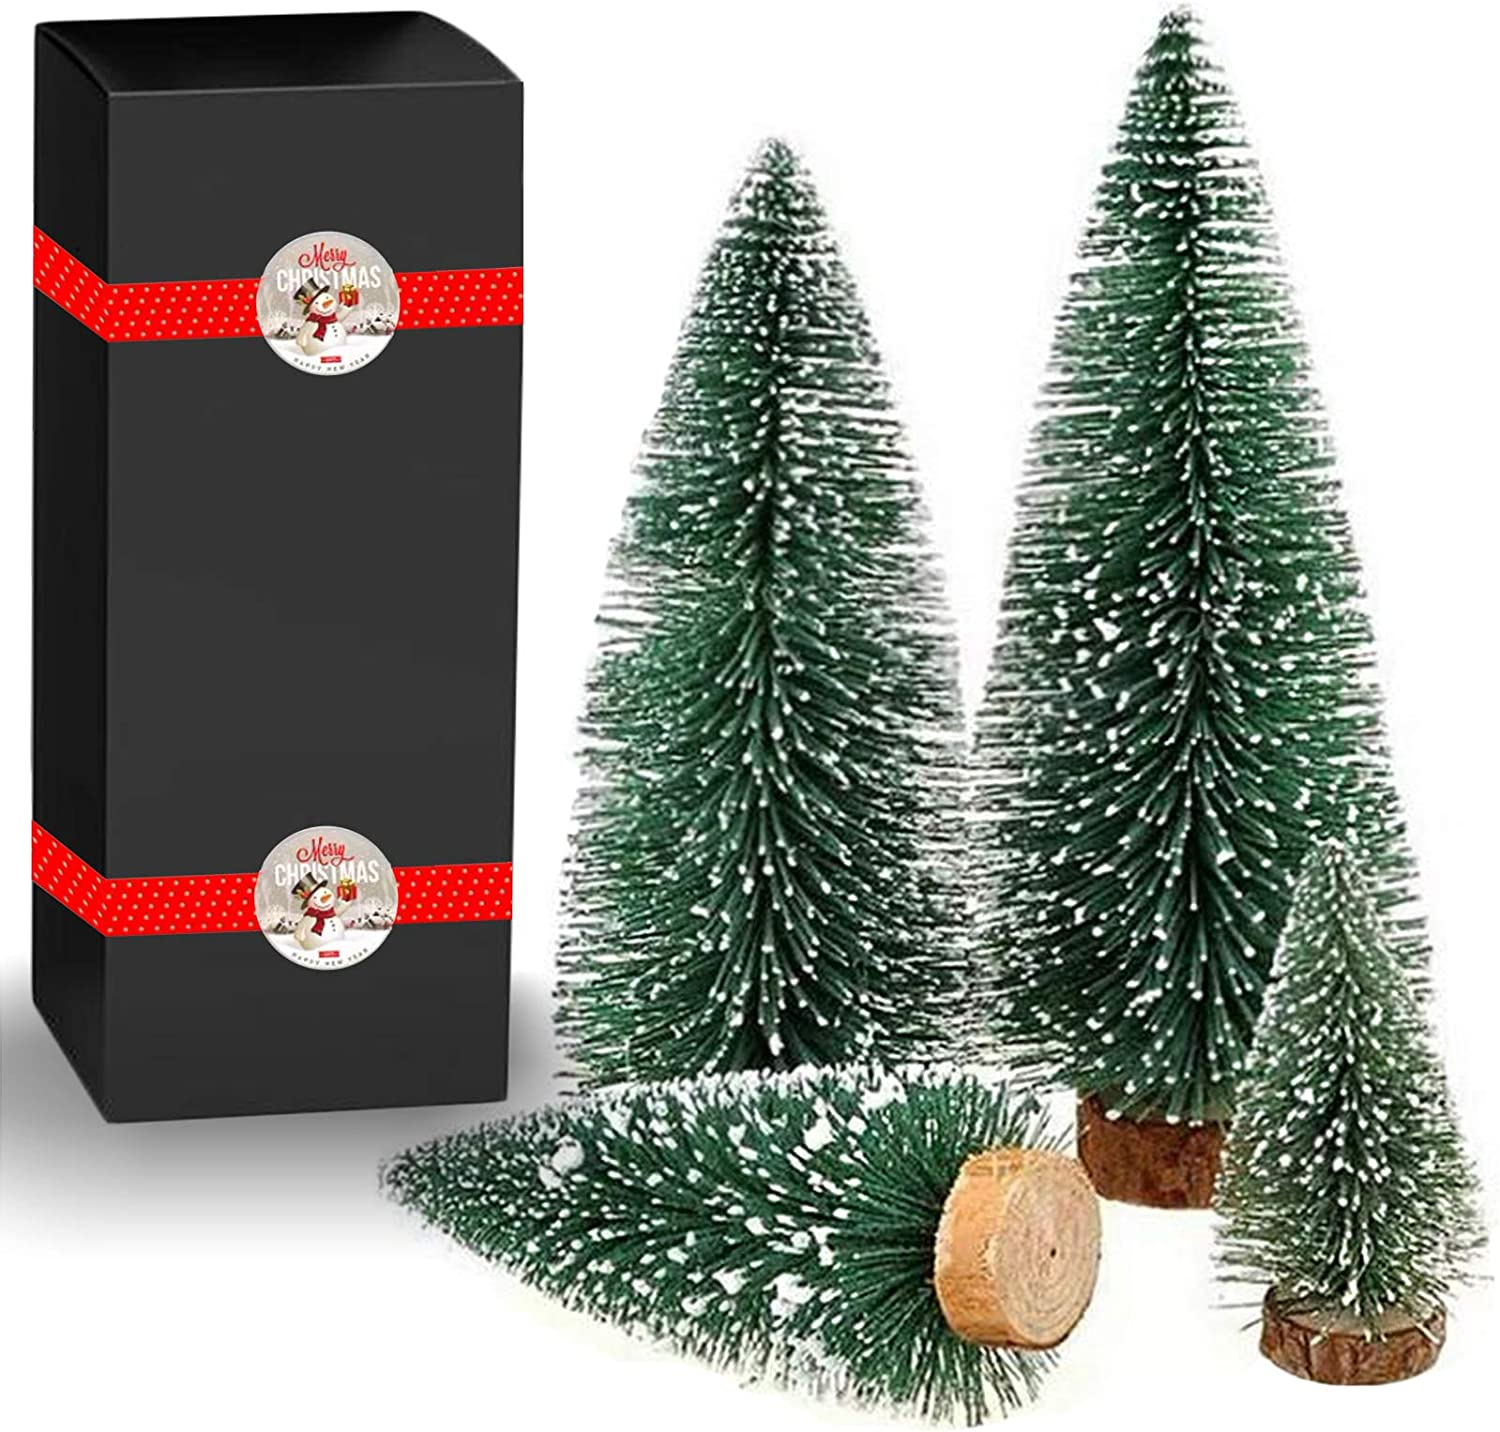 Desktop Miniature Christmas Trees Mini Popular brand in the world Pine Tree W Outstanding Snow and with